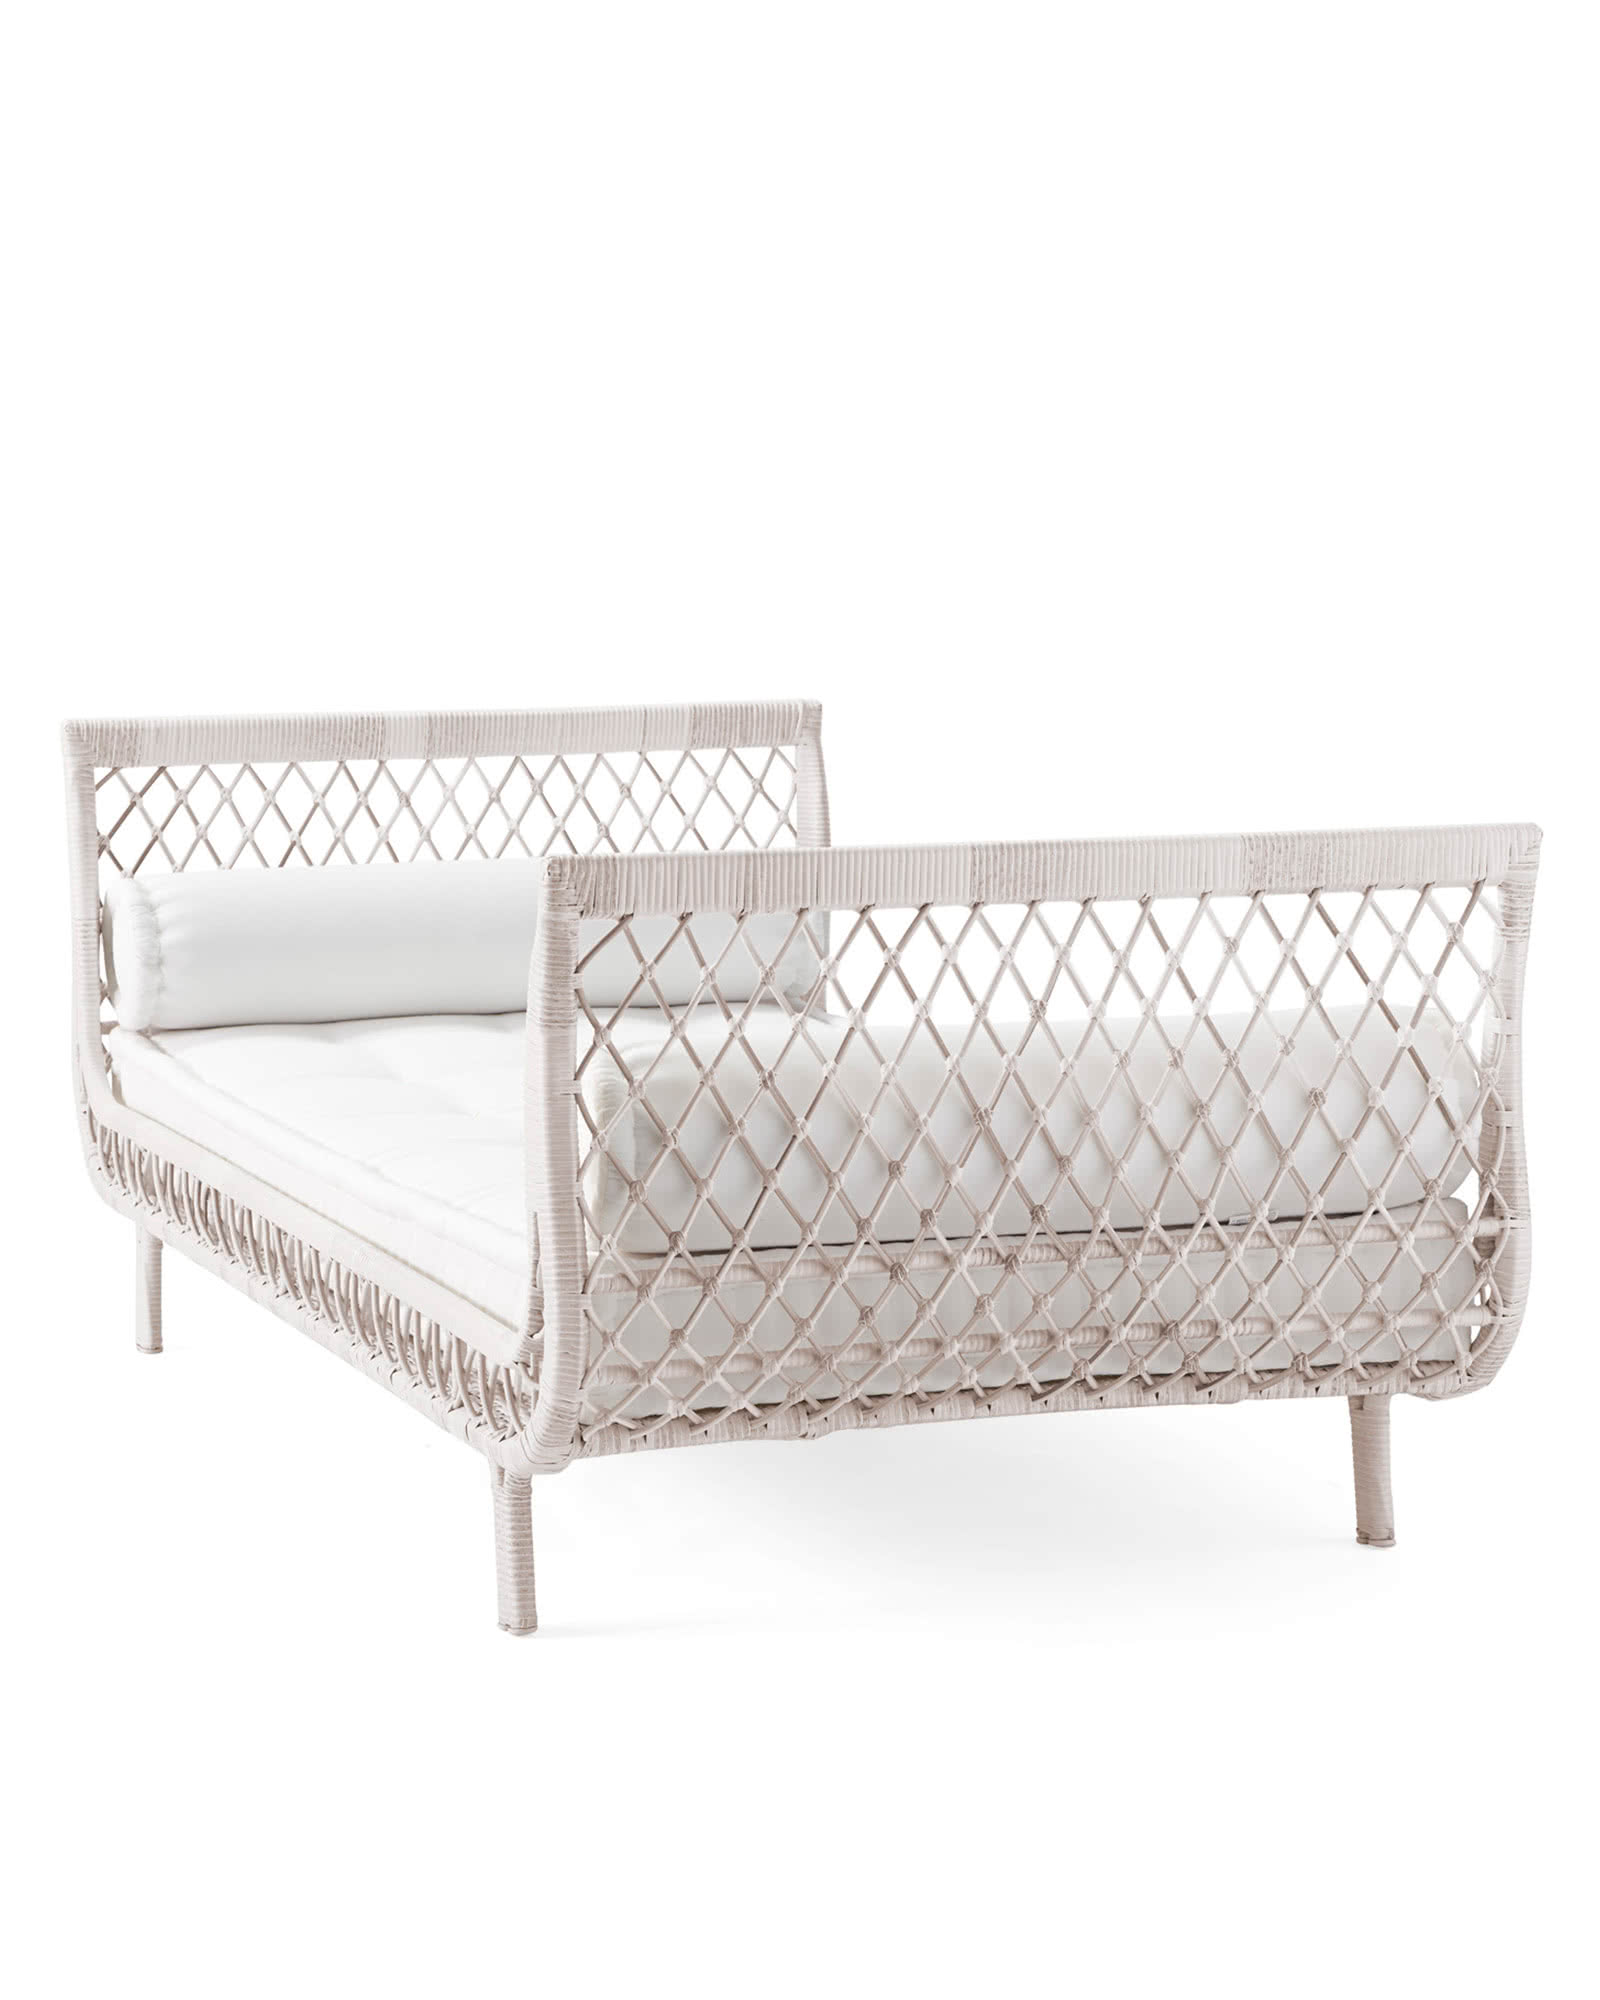 Capistrano Outdoor Daybed - Driftwood,